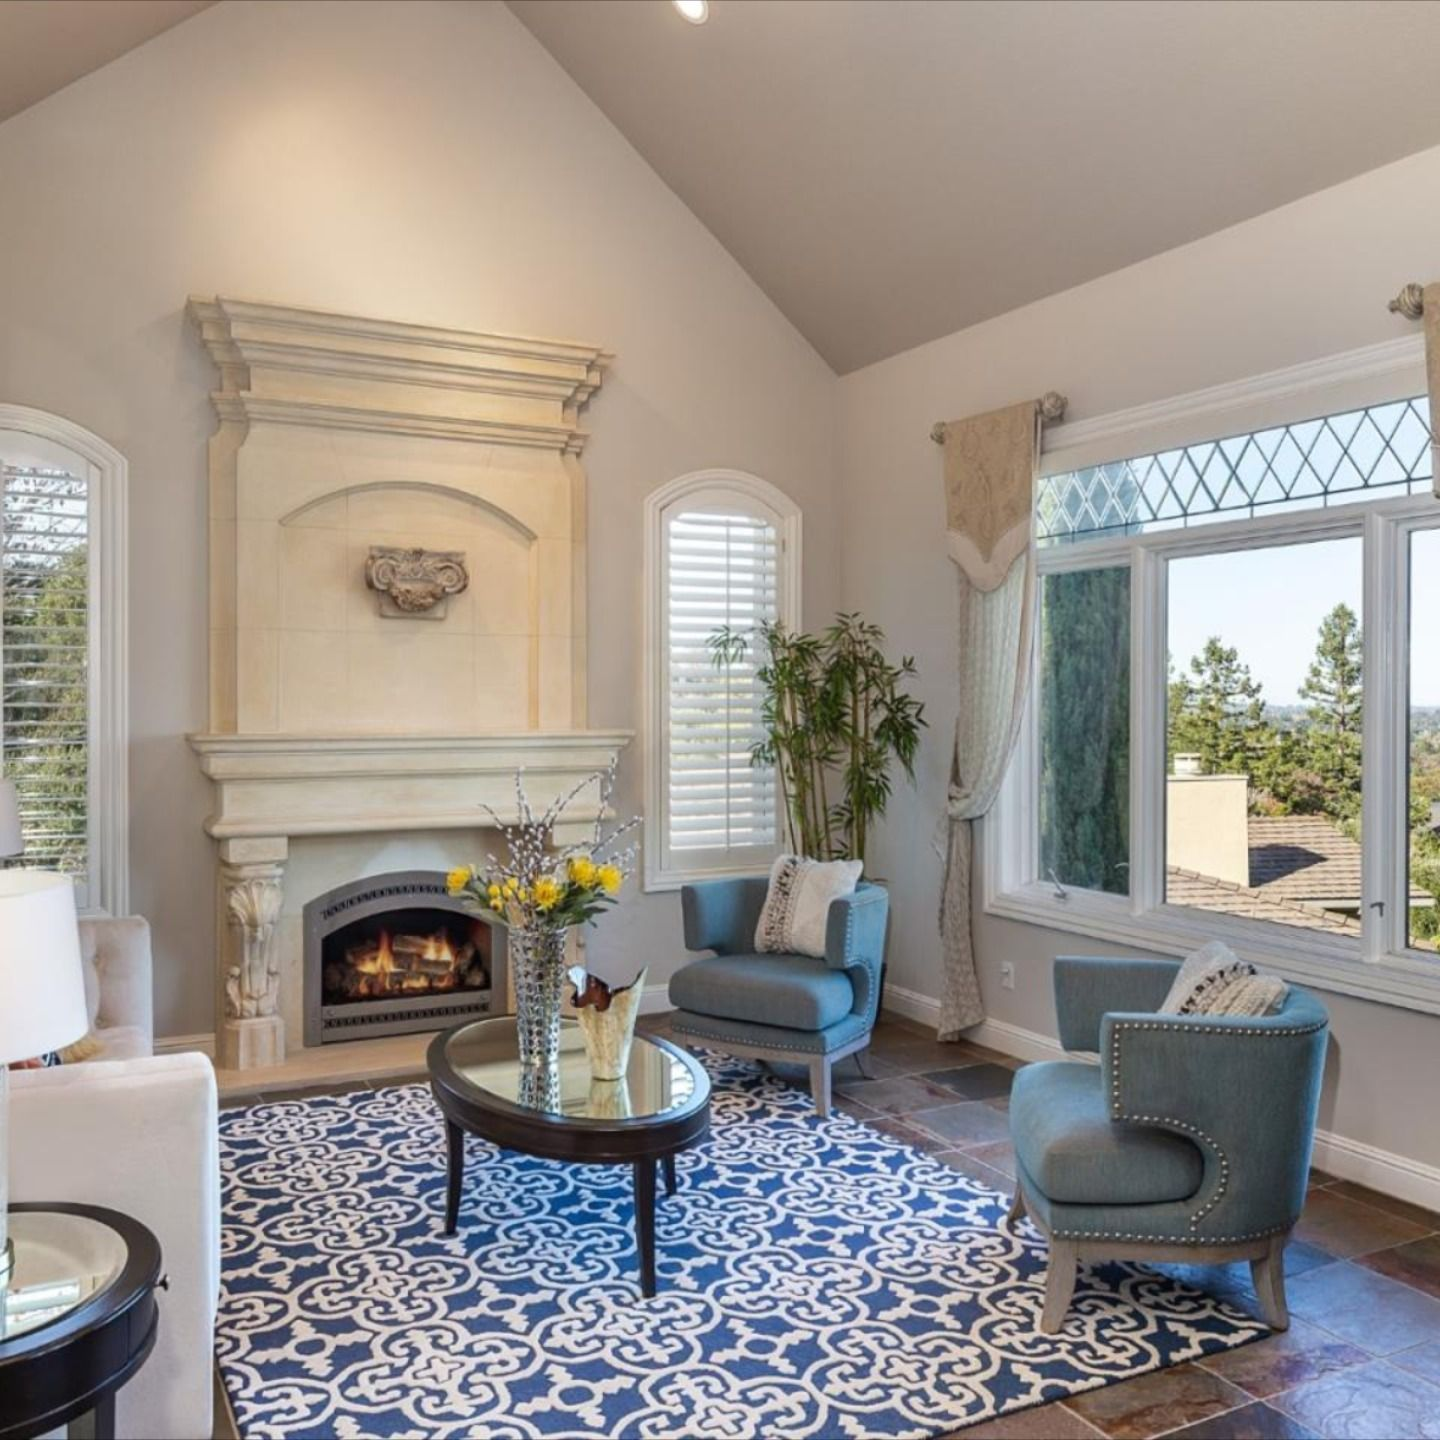 Search for houses for sale in SAN JOSE, CA  1337 Rimrock DR, SAN JOSE, CA 95120   $2,999,999 Feel free to contact me or schedule a showing  Gary Morgan Realty World-Todd Su & Company 408-504-3017 gary@morganrealtyusa.com  #interiordesign #realestate #siliconvalleyhomes #bayarea #siliconvalleyrealestate #bayareahomes #sanjose #realtor #homedesign #newhome #dreamhome #houseandhome #customhomes #homeforsale #househunting #GaryMorgan #siliconvalley #Morganrealtyusa #sanjosehomesforsale #homes